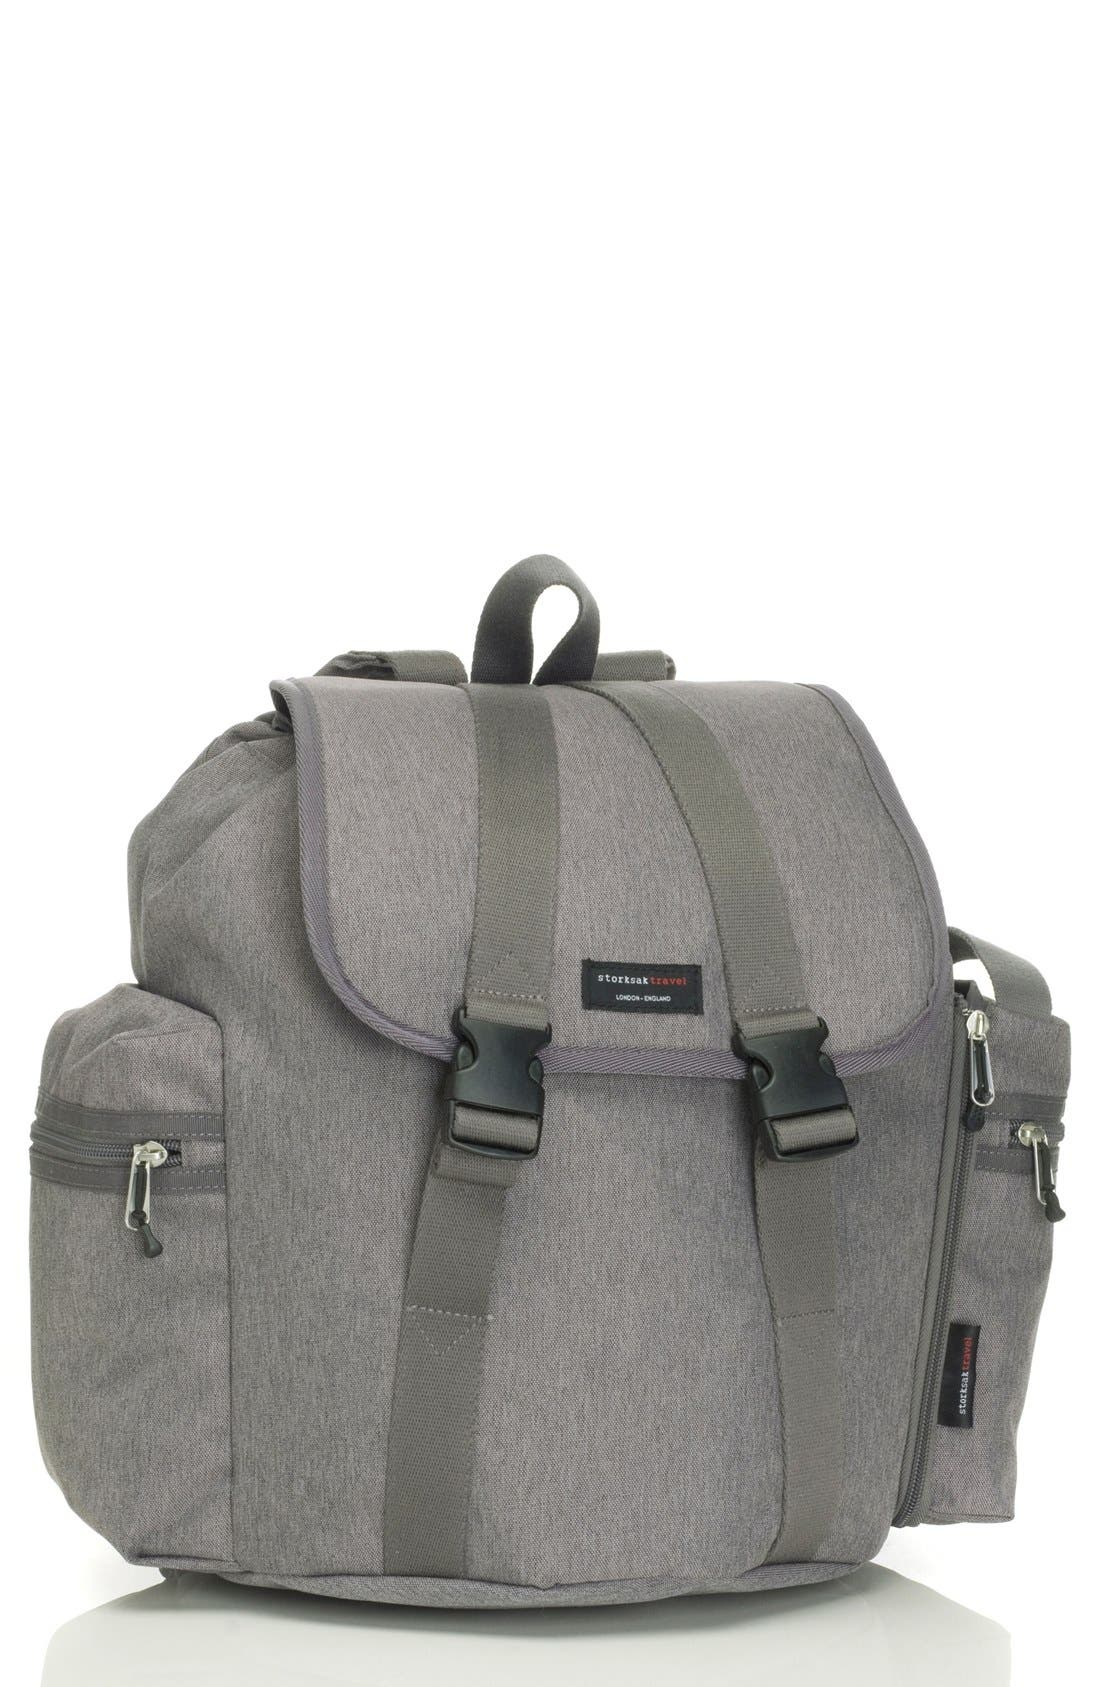 Main Image - Storksak Travel Backpack Diaper Bag